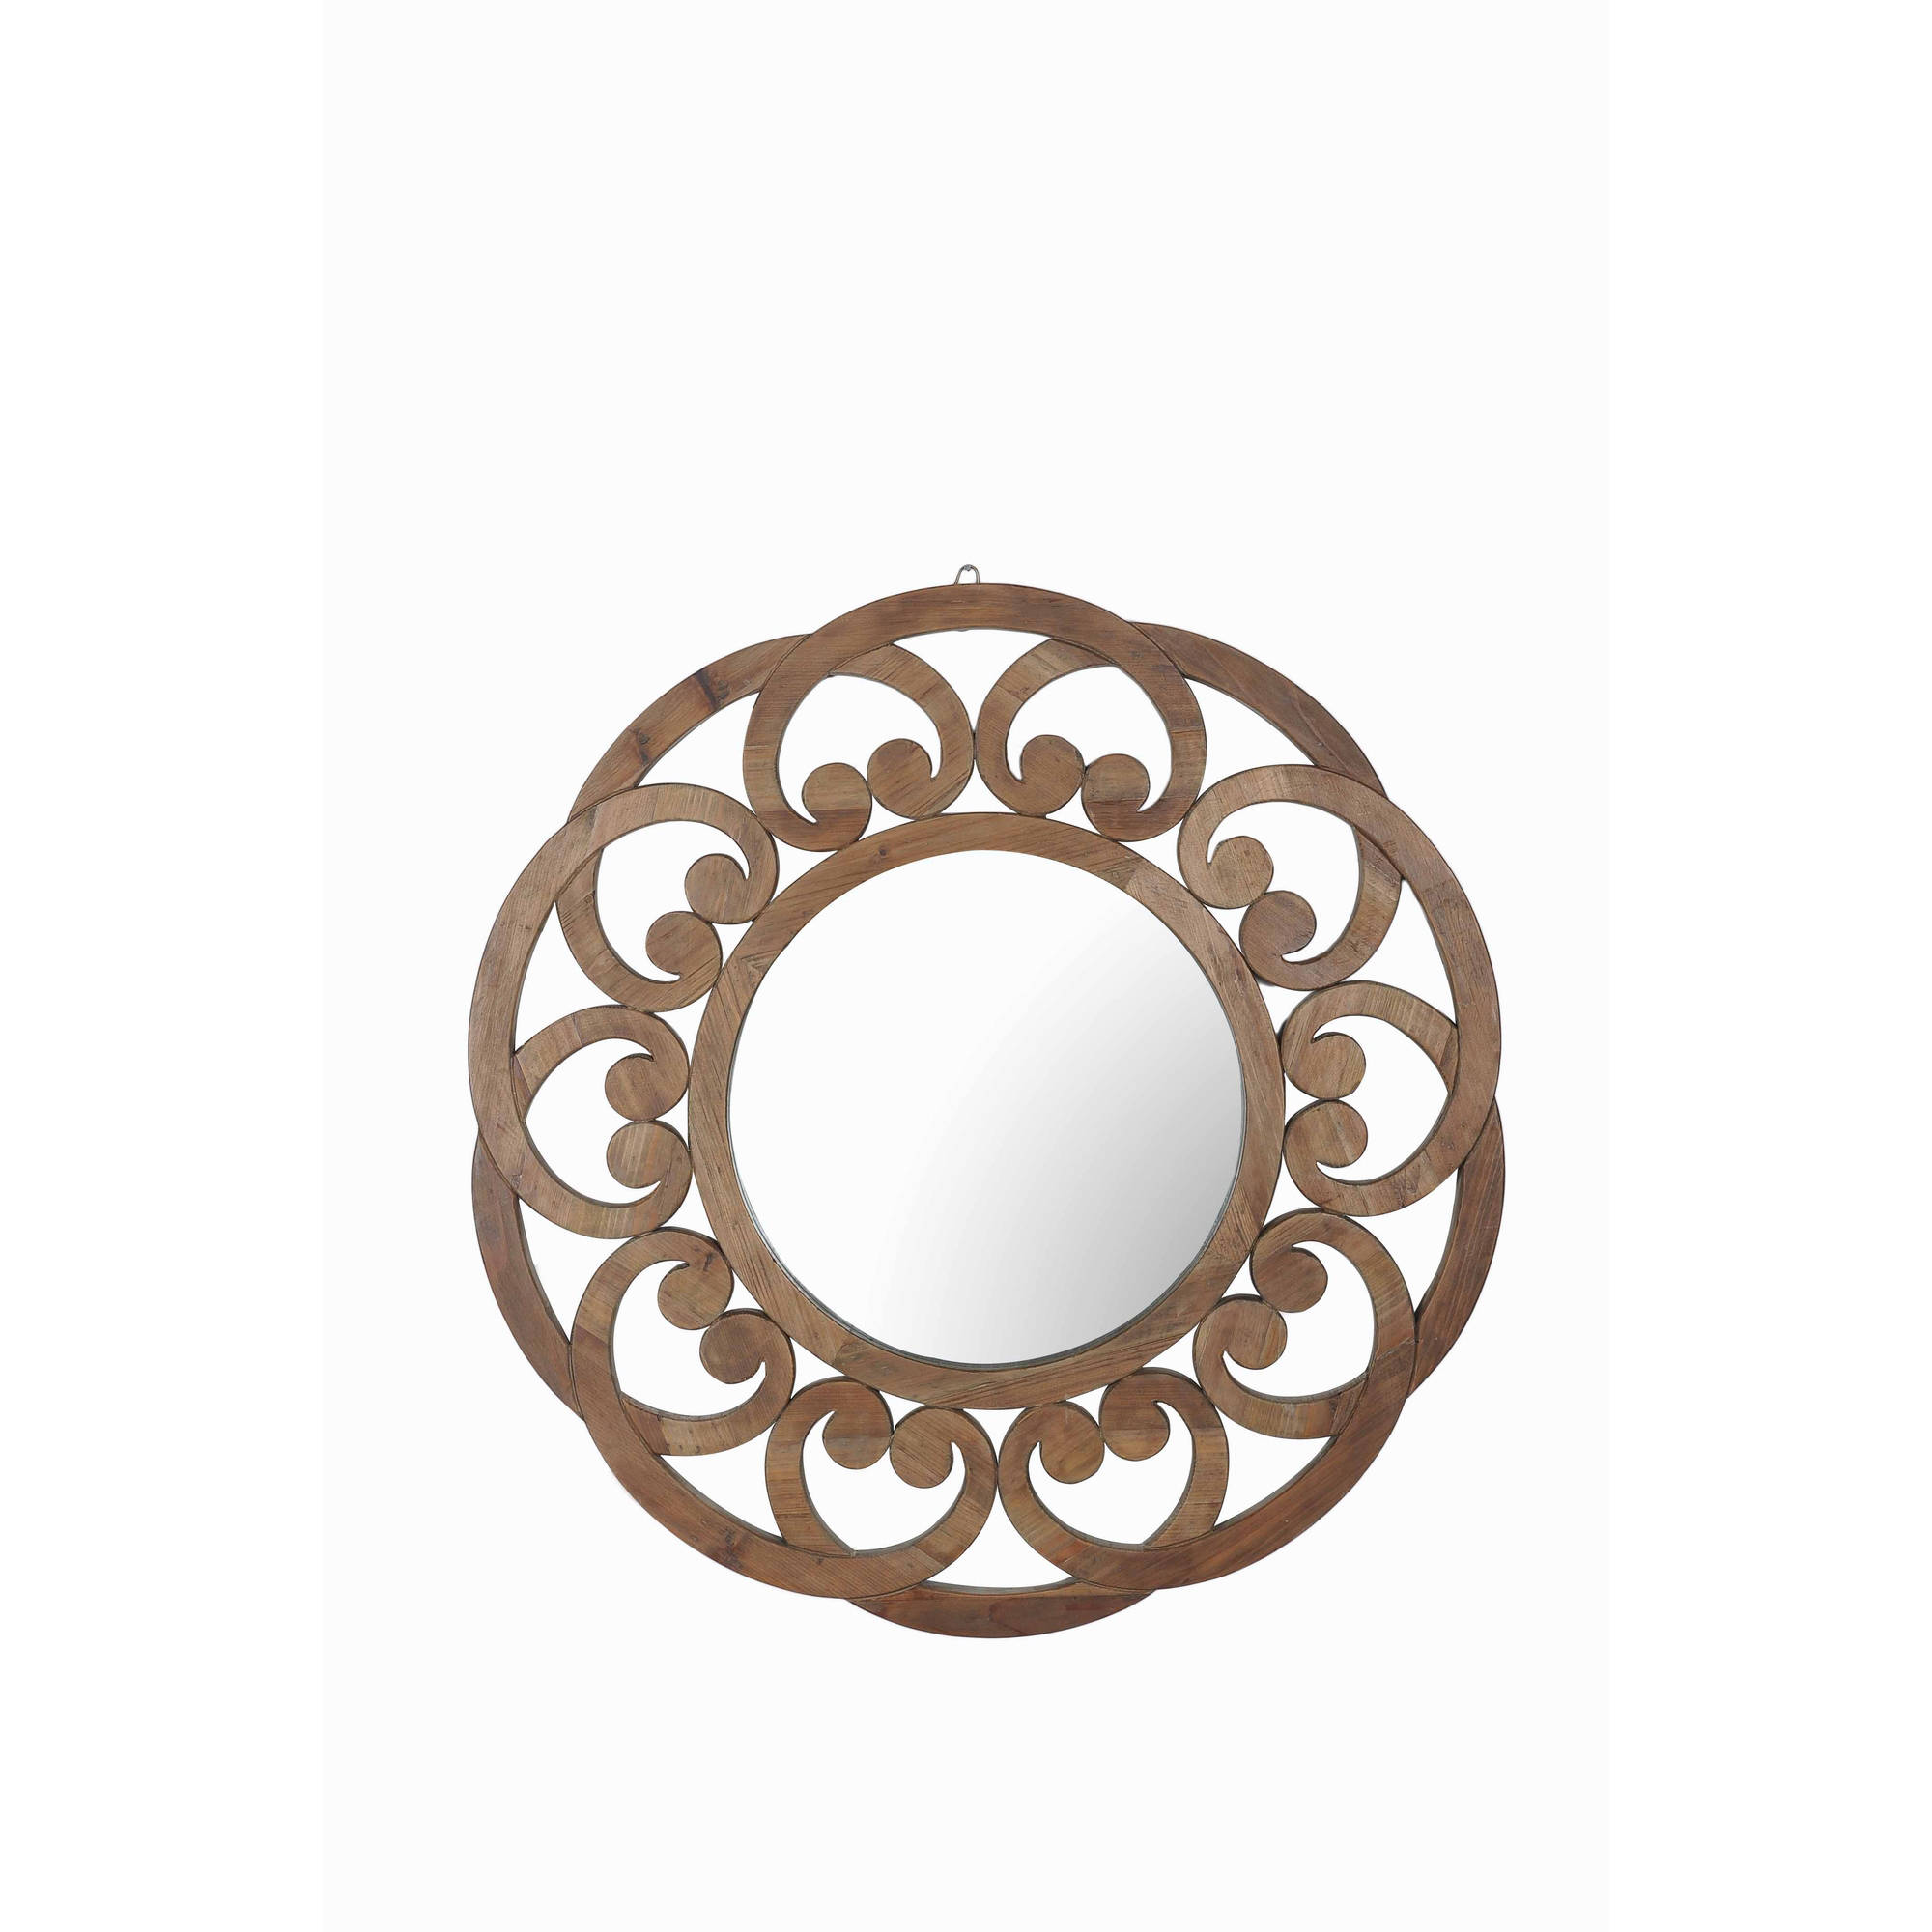 "Sunjoy 130201010 Recycled Fir Wood Wide Border Round Mirror, 57"" by SunNest Services LLC"